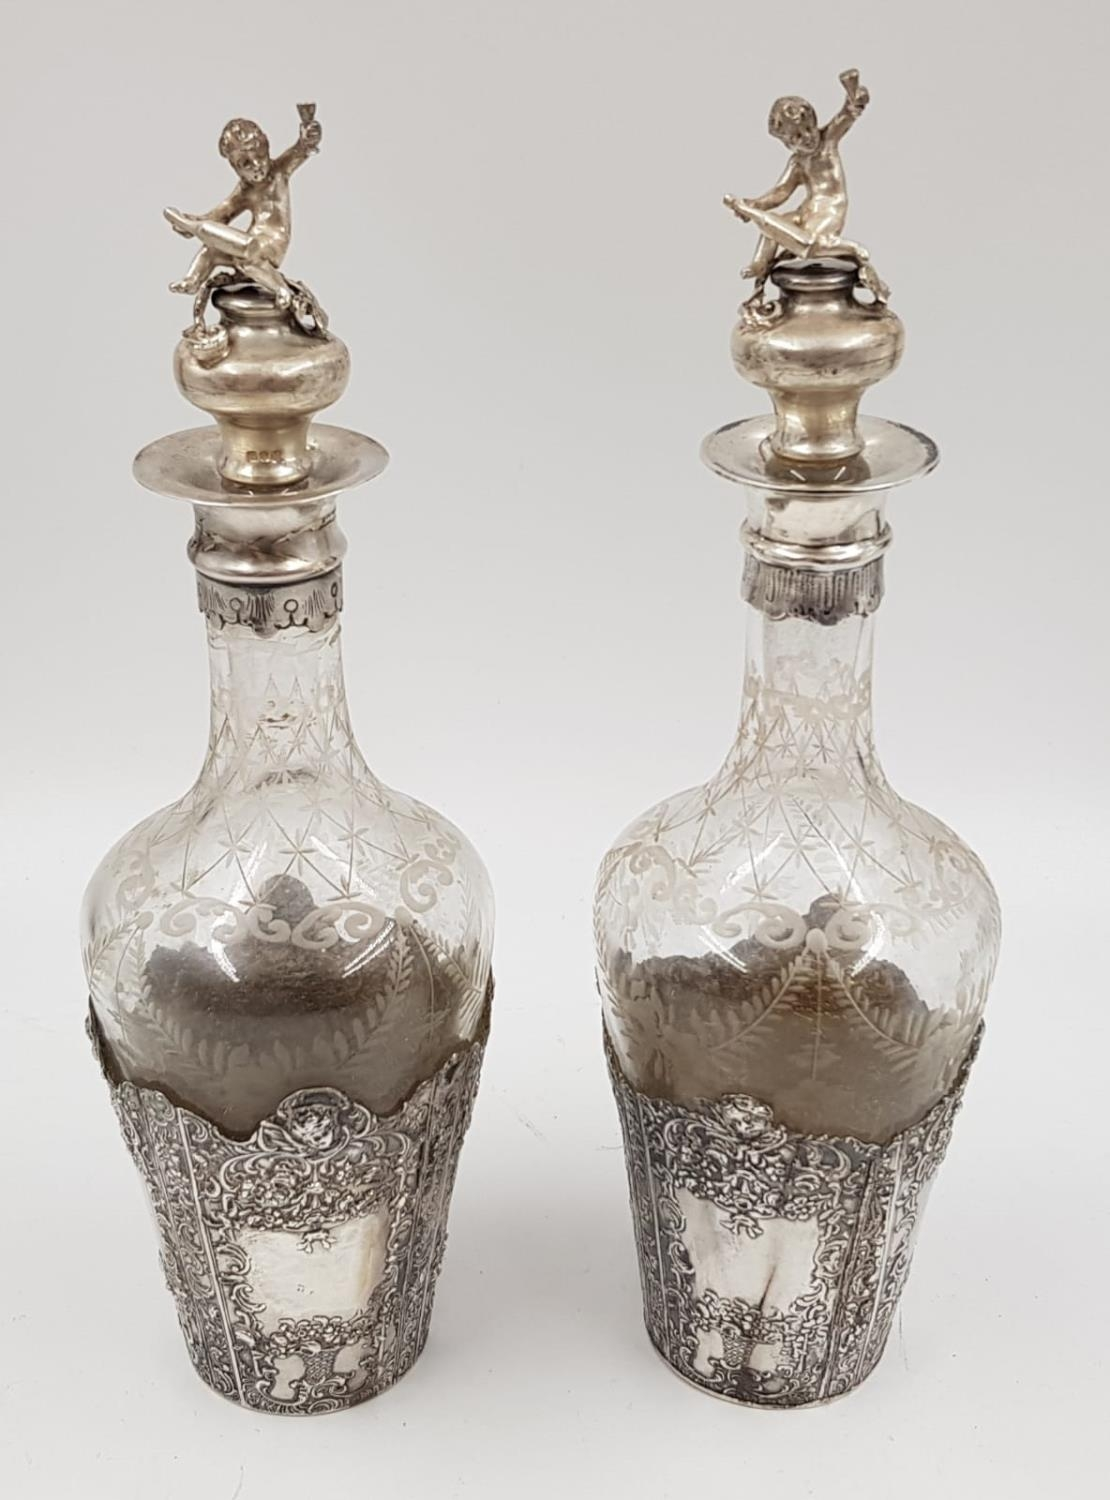 A beautiful pair of antique silver etching bottles. Dated London 1896 and imported by Berthold